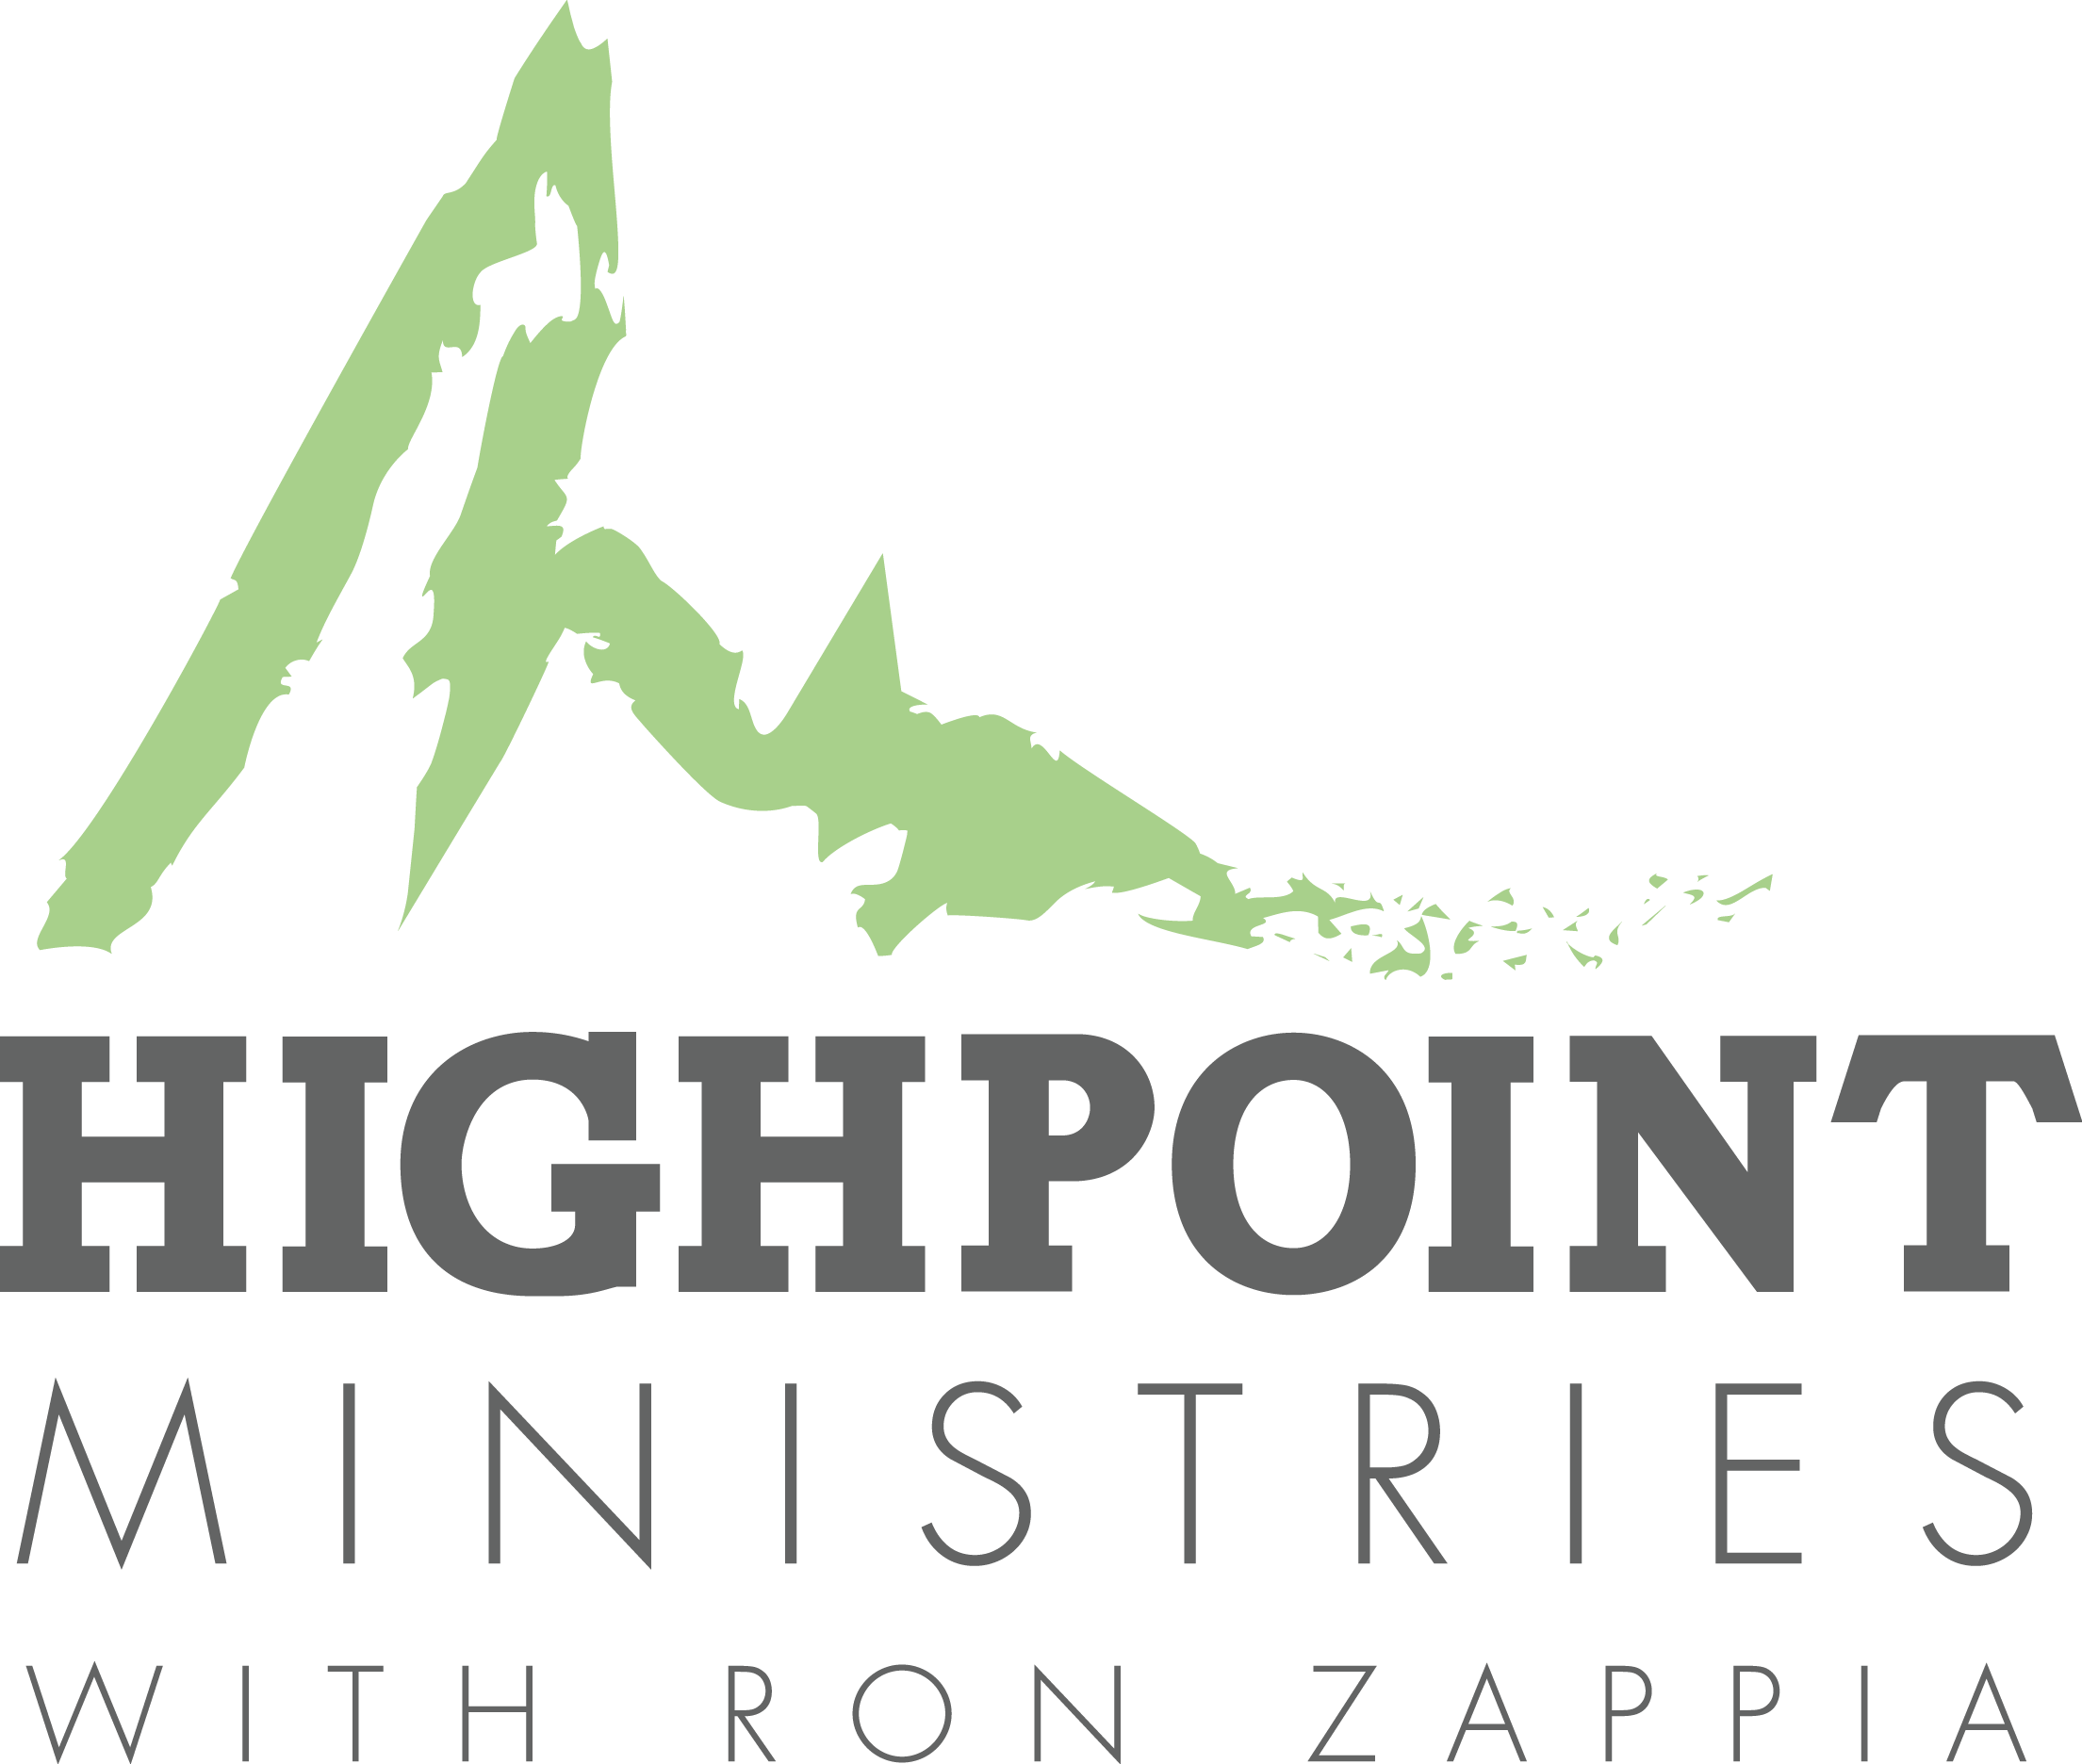 www.highpointministries.com - 26-minute Daily and Weekend Program